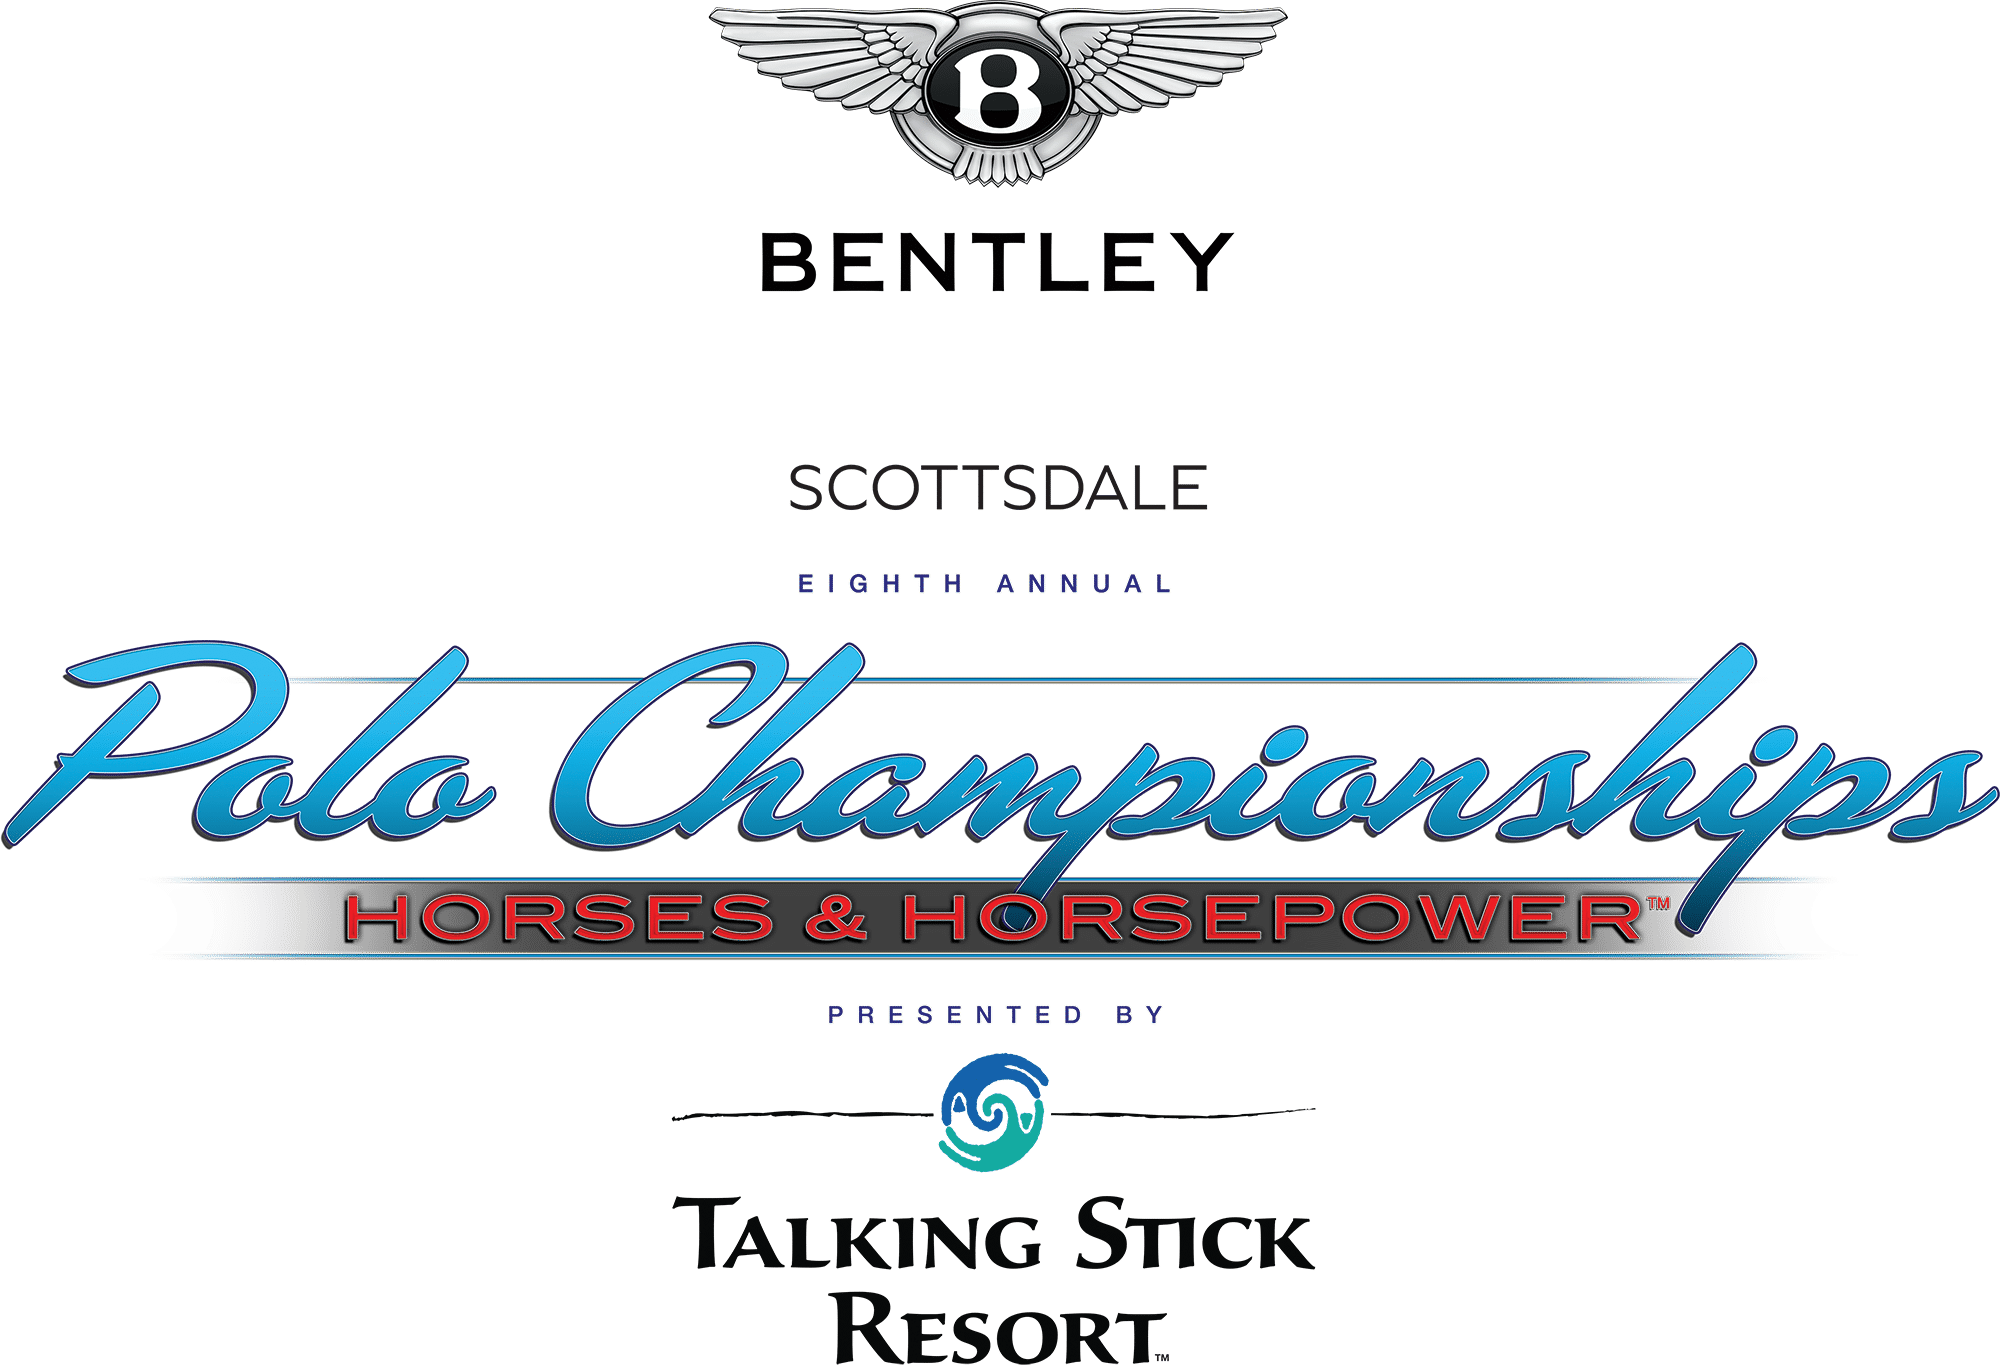 Bentley Scottsdale Polo Championships | Nov. 10-11